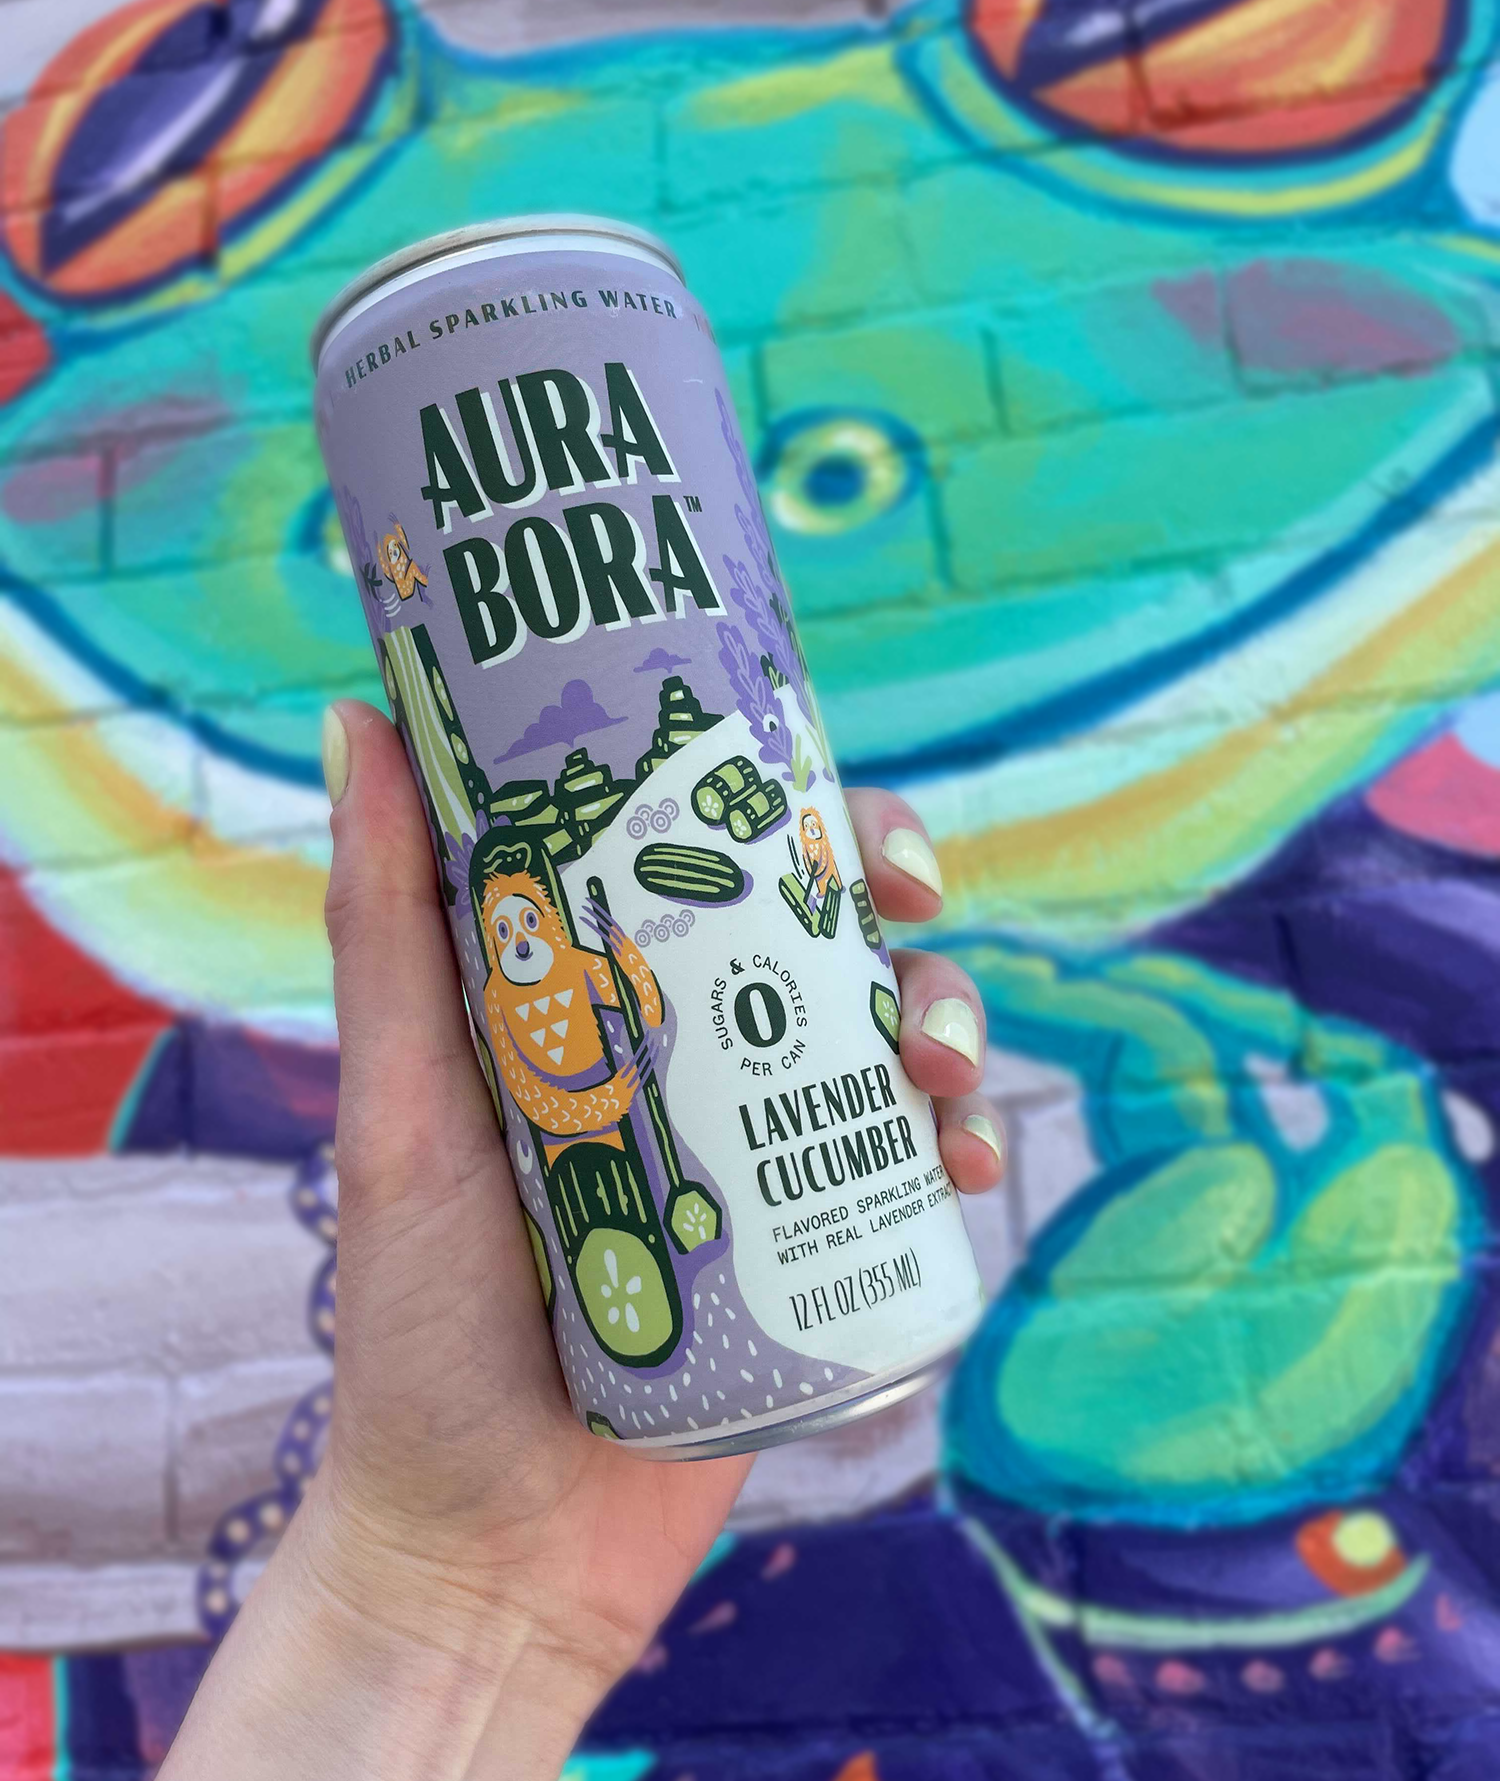 can of lavender cucumber seltzer with illustration of sloth and cucumbers